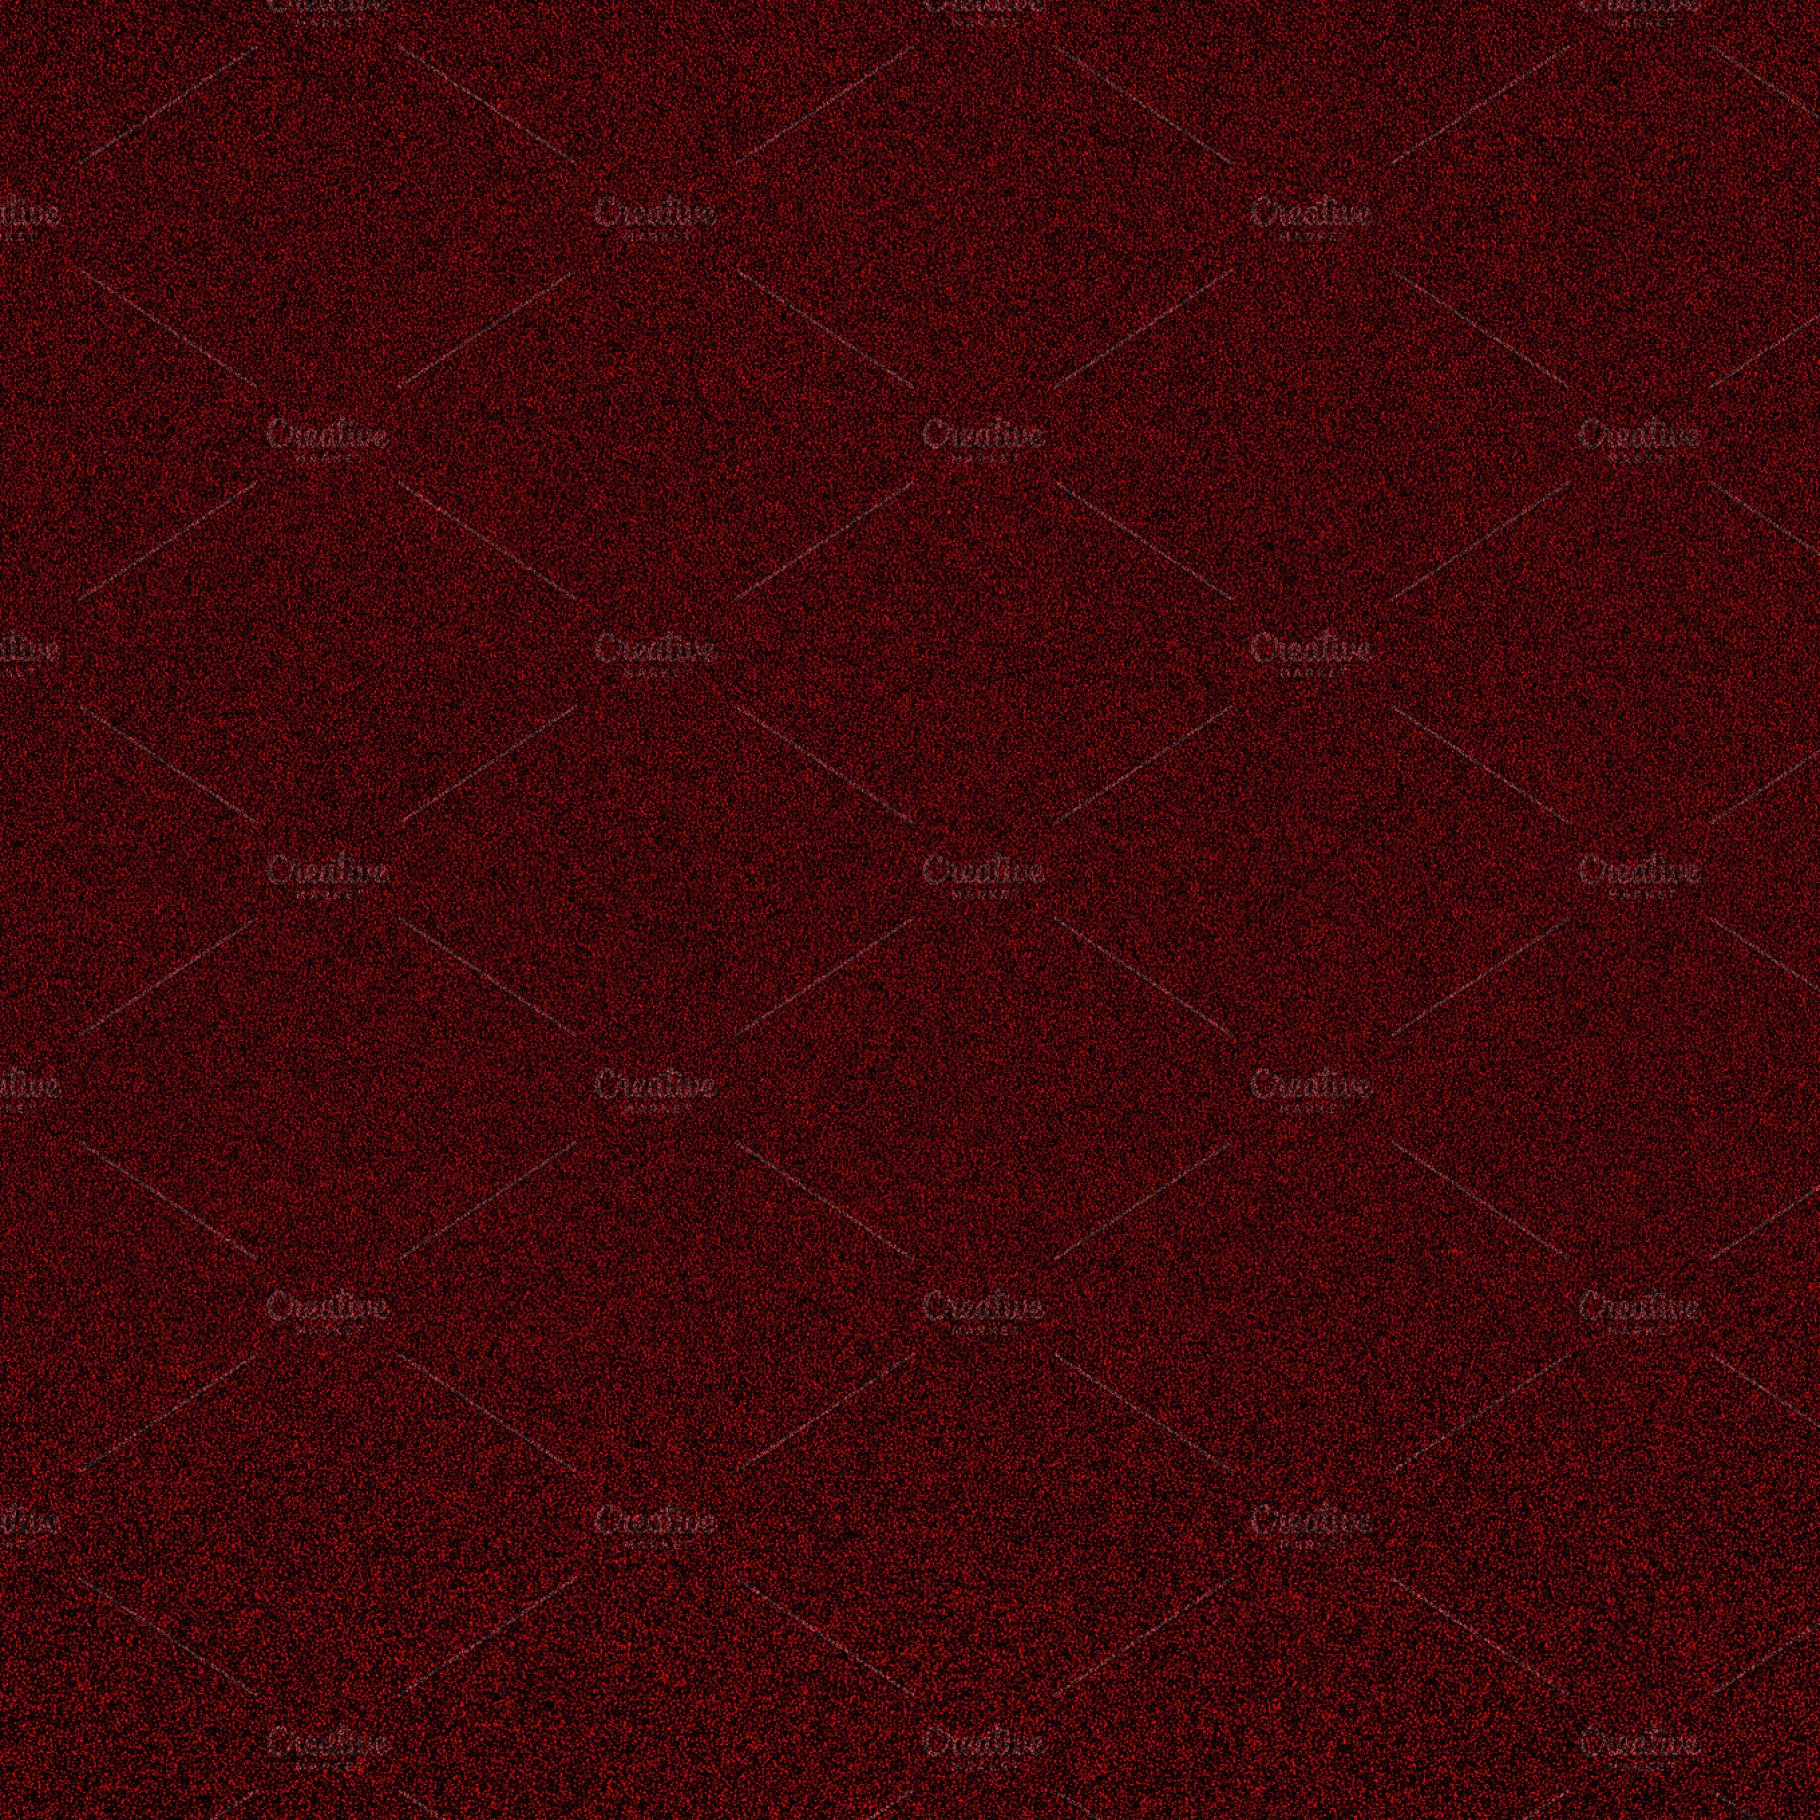 Dark red background with shiny speckles texture